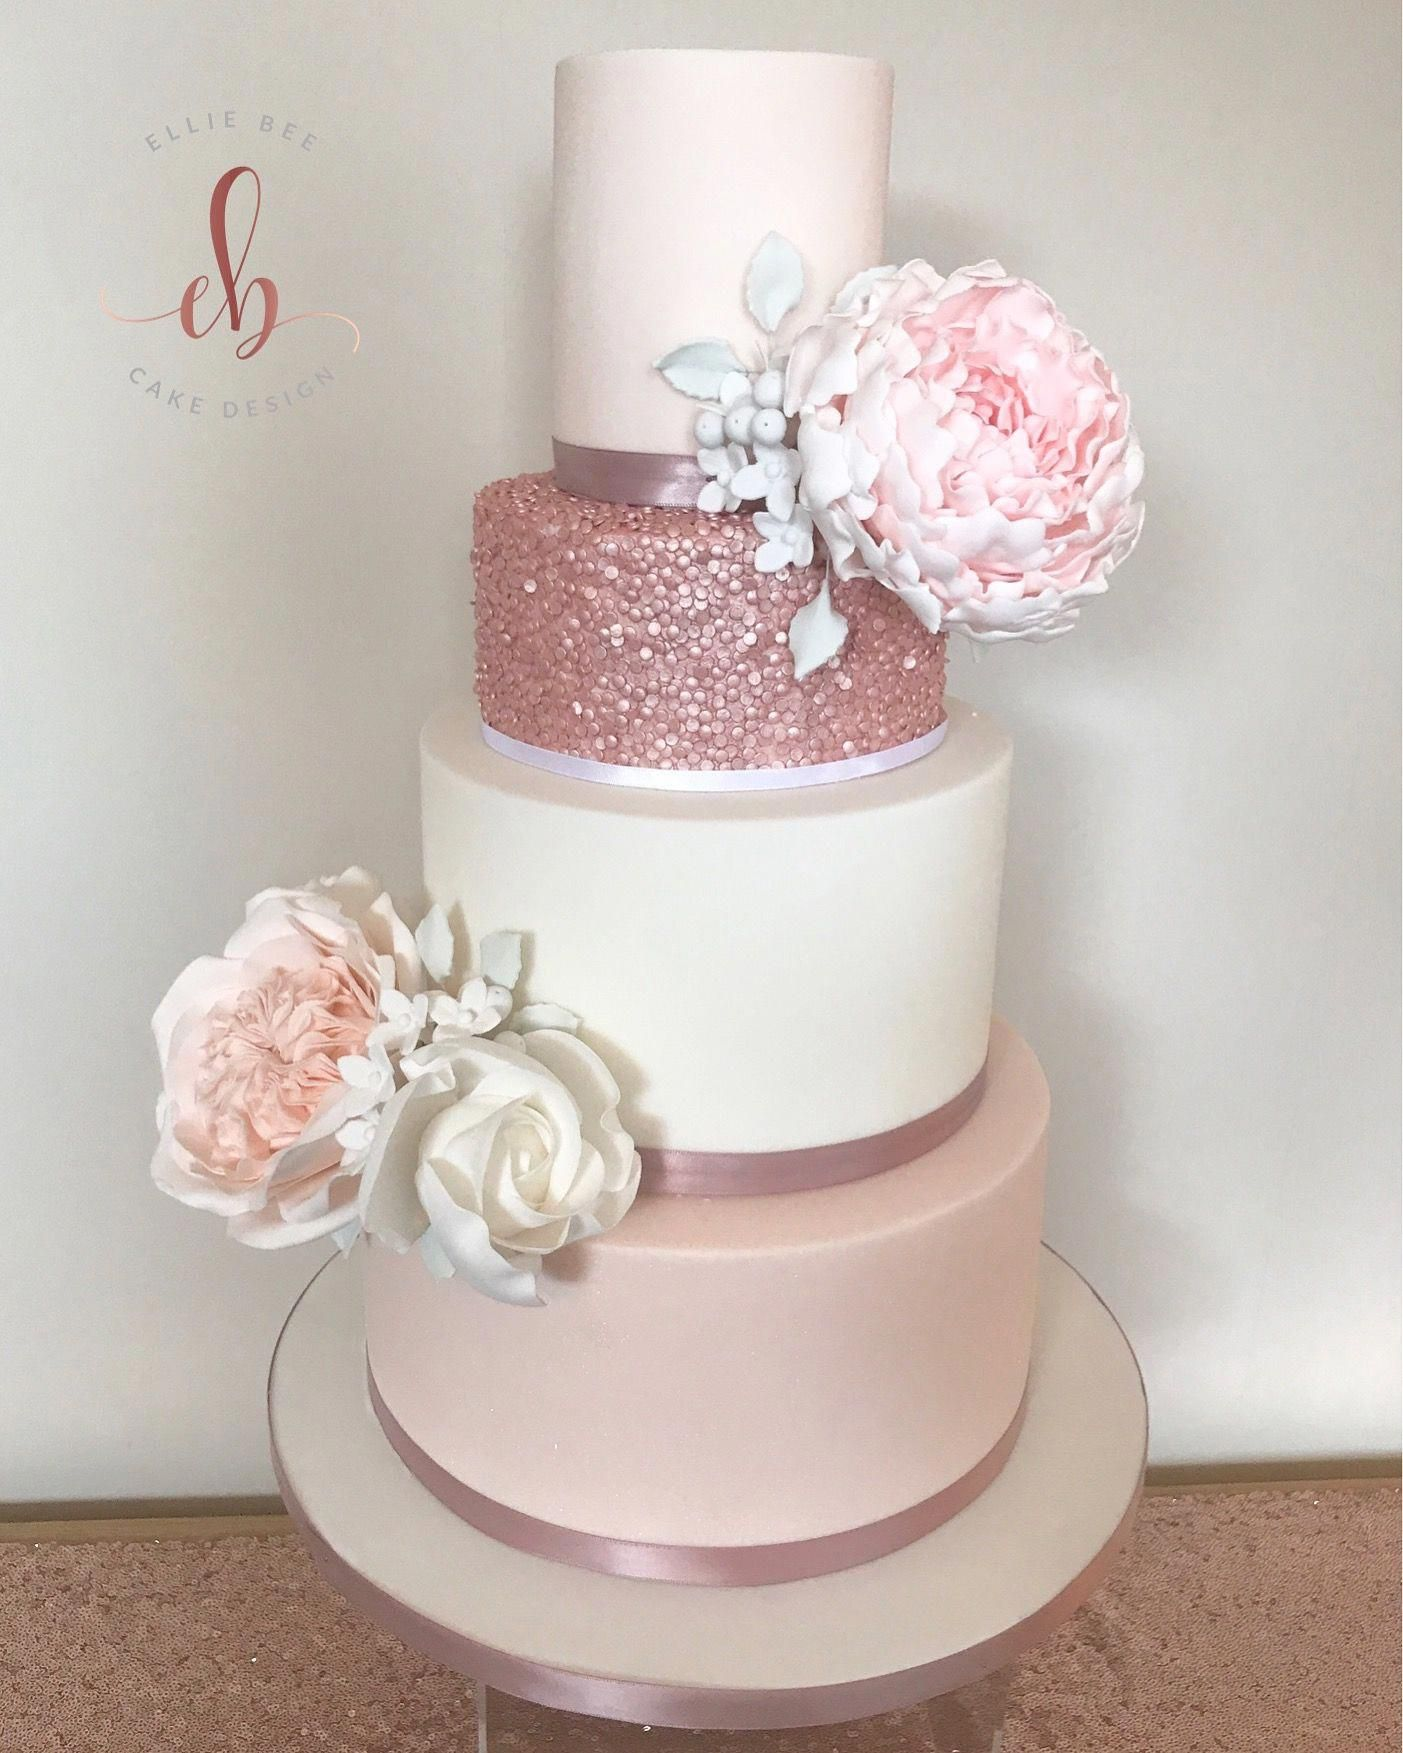 Wedding cakes can go from the simplest to the most intricate decors; each has its own creative distinctions depending on the imaginative juices of the baker. They should comply with the main function of the cake, that whatever embellishments it possess, it can still be edible and can be eaten. #goldweddingcakes